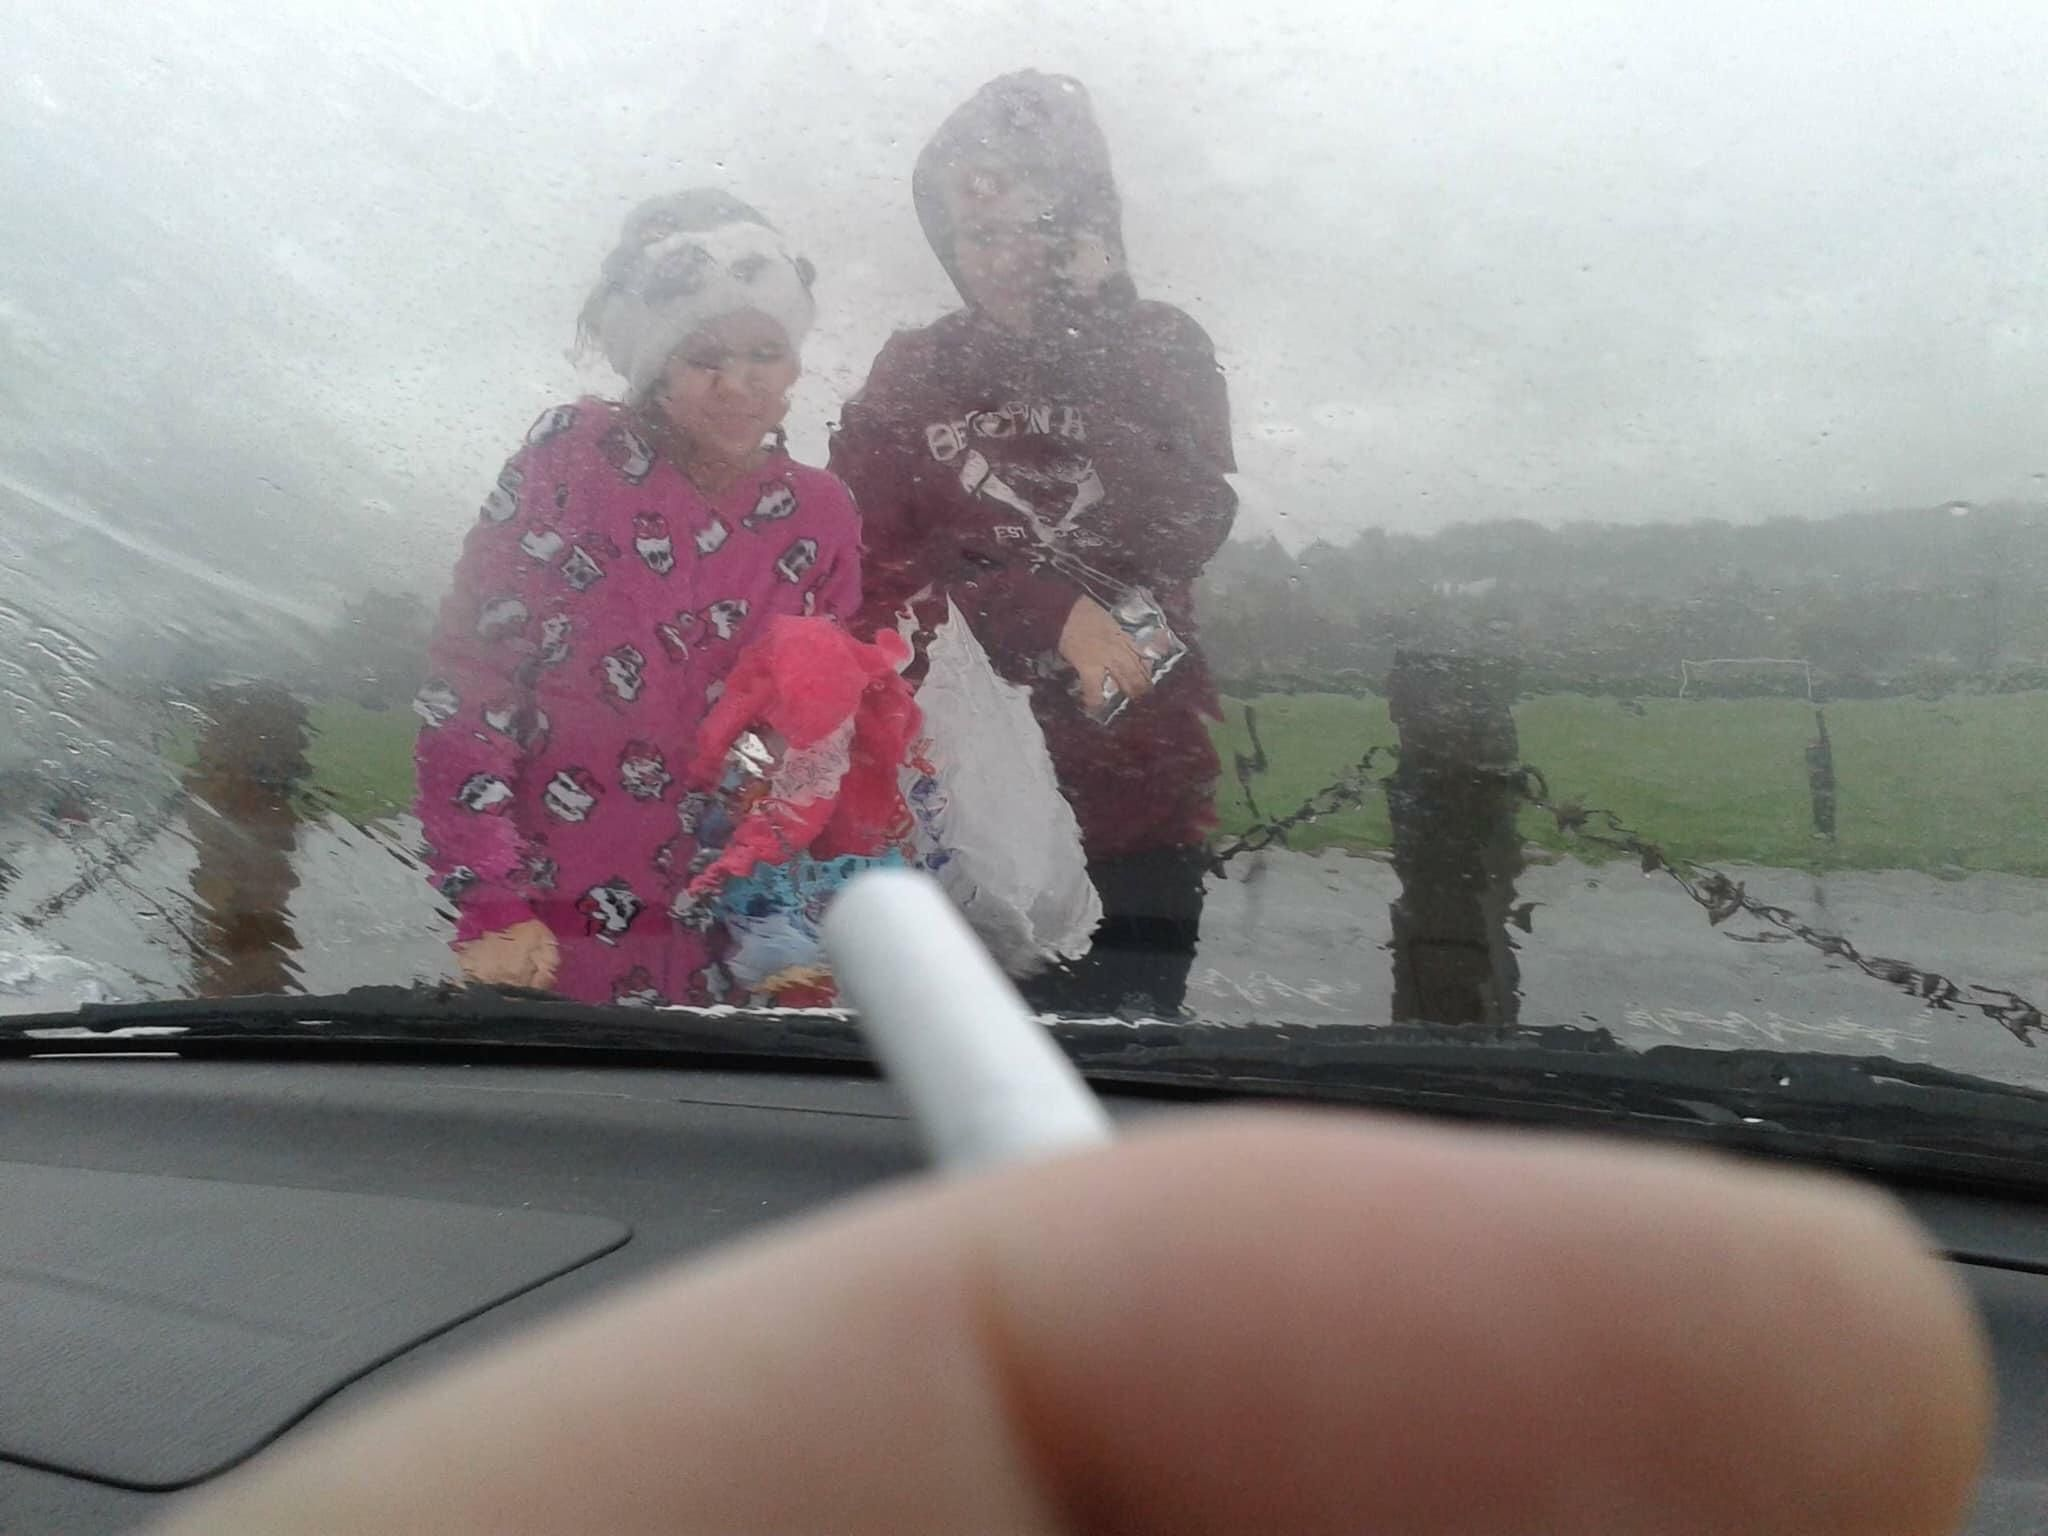 No smoking with kids in the car law is ridiculous. Just look at them out there in the rain.